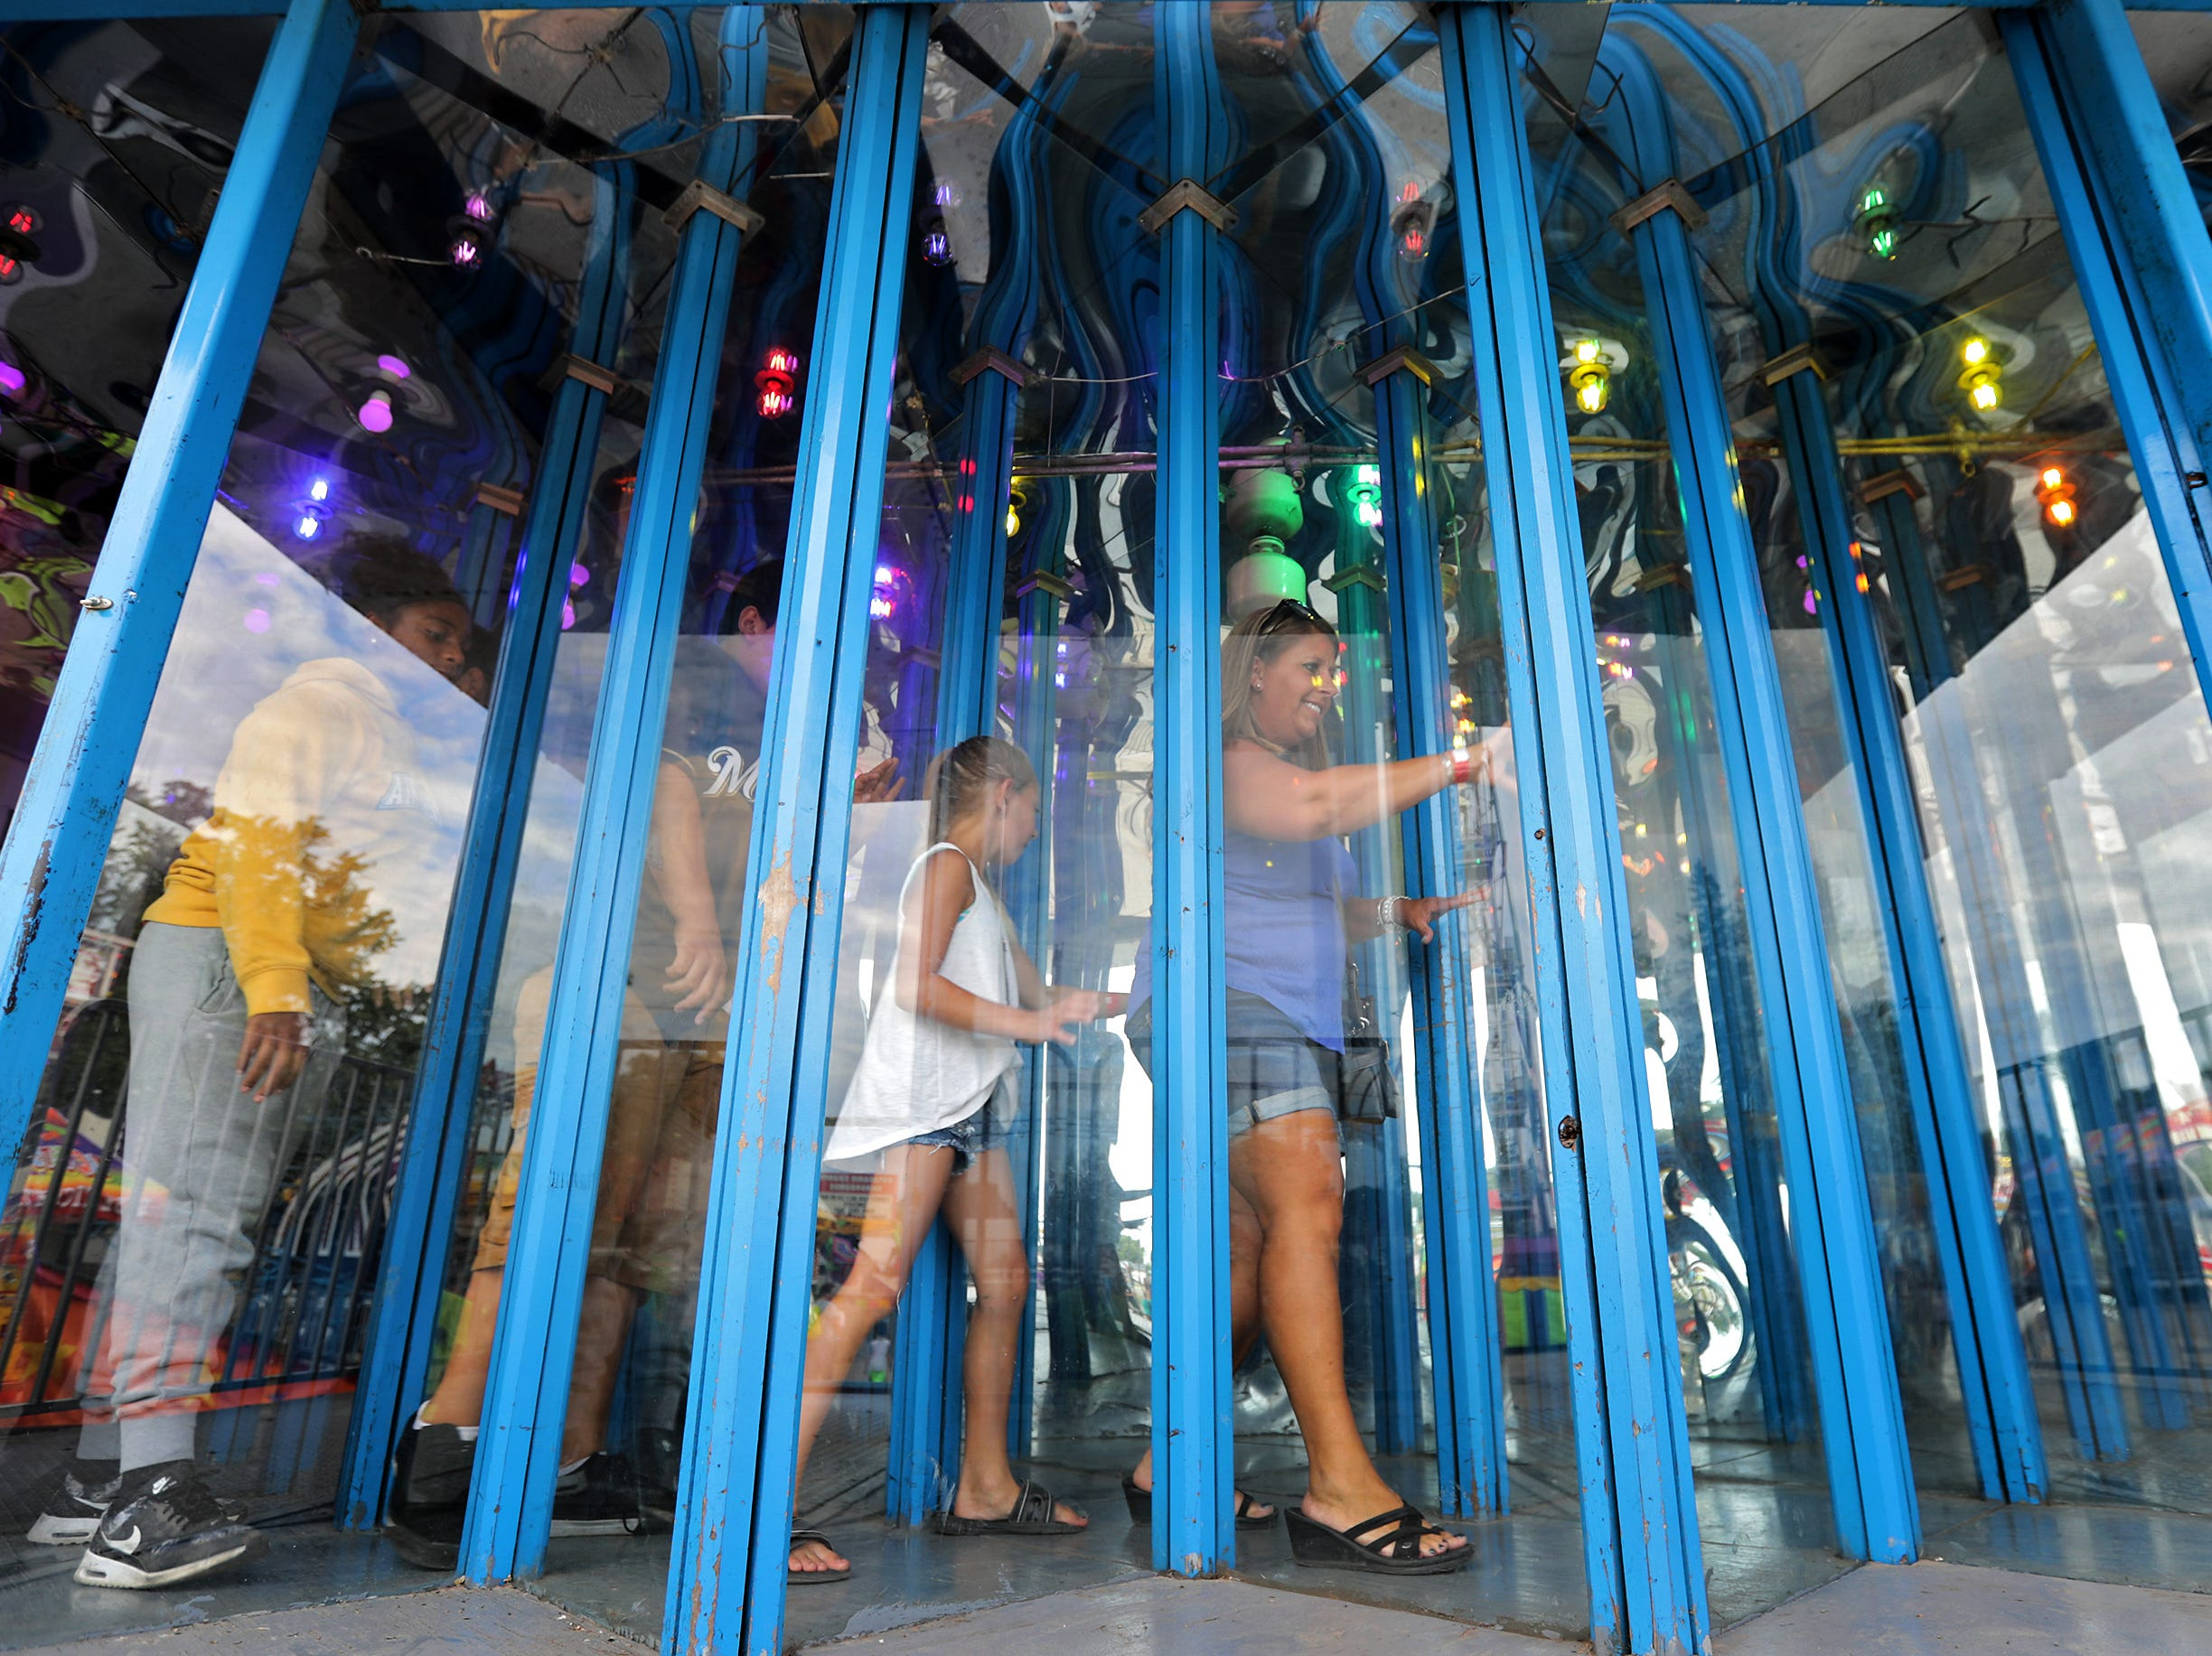 Heather, right and Khloe Thurber lead a group through the Glass House, house of mirrors, during the Outagamie County Fair on Wednesday, July 25, 2018 in Seymour, Wis. 